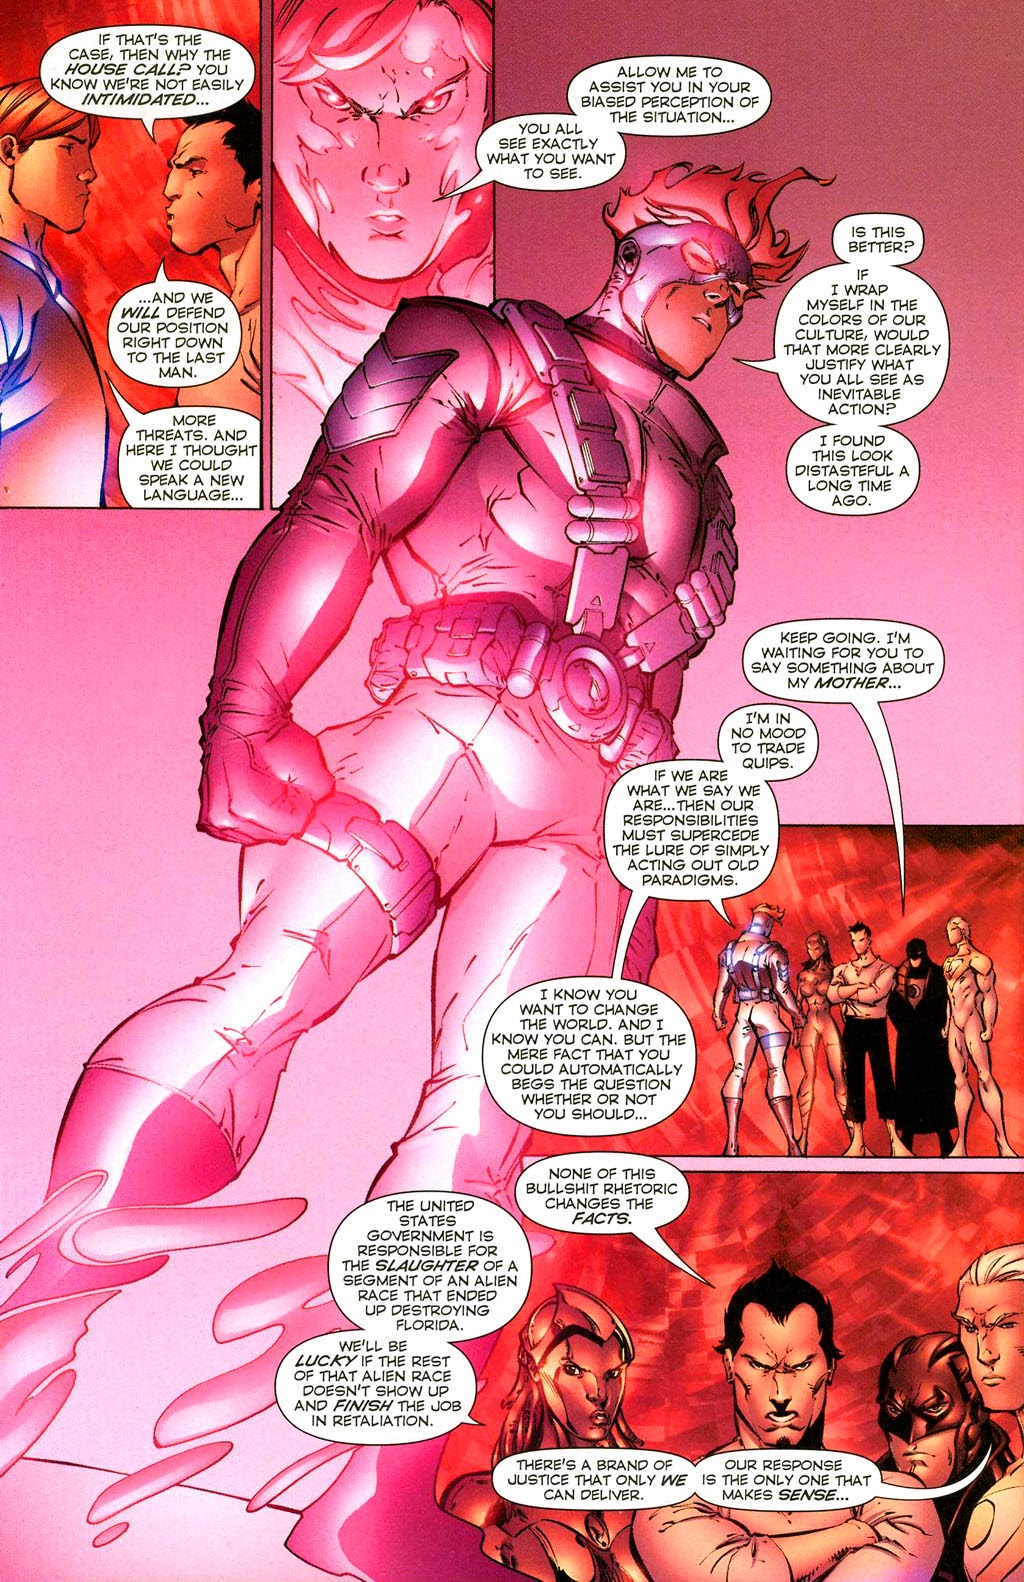 In 'Coup D'Etat' (2004) #1, Spartan warns the Authority of the consequences of their actions.